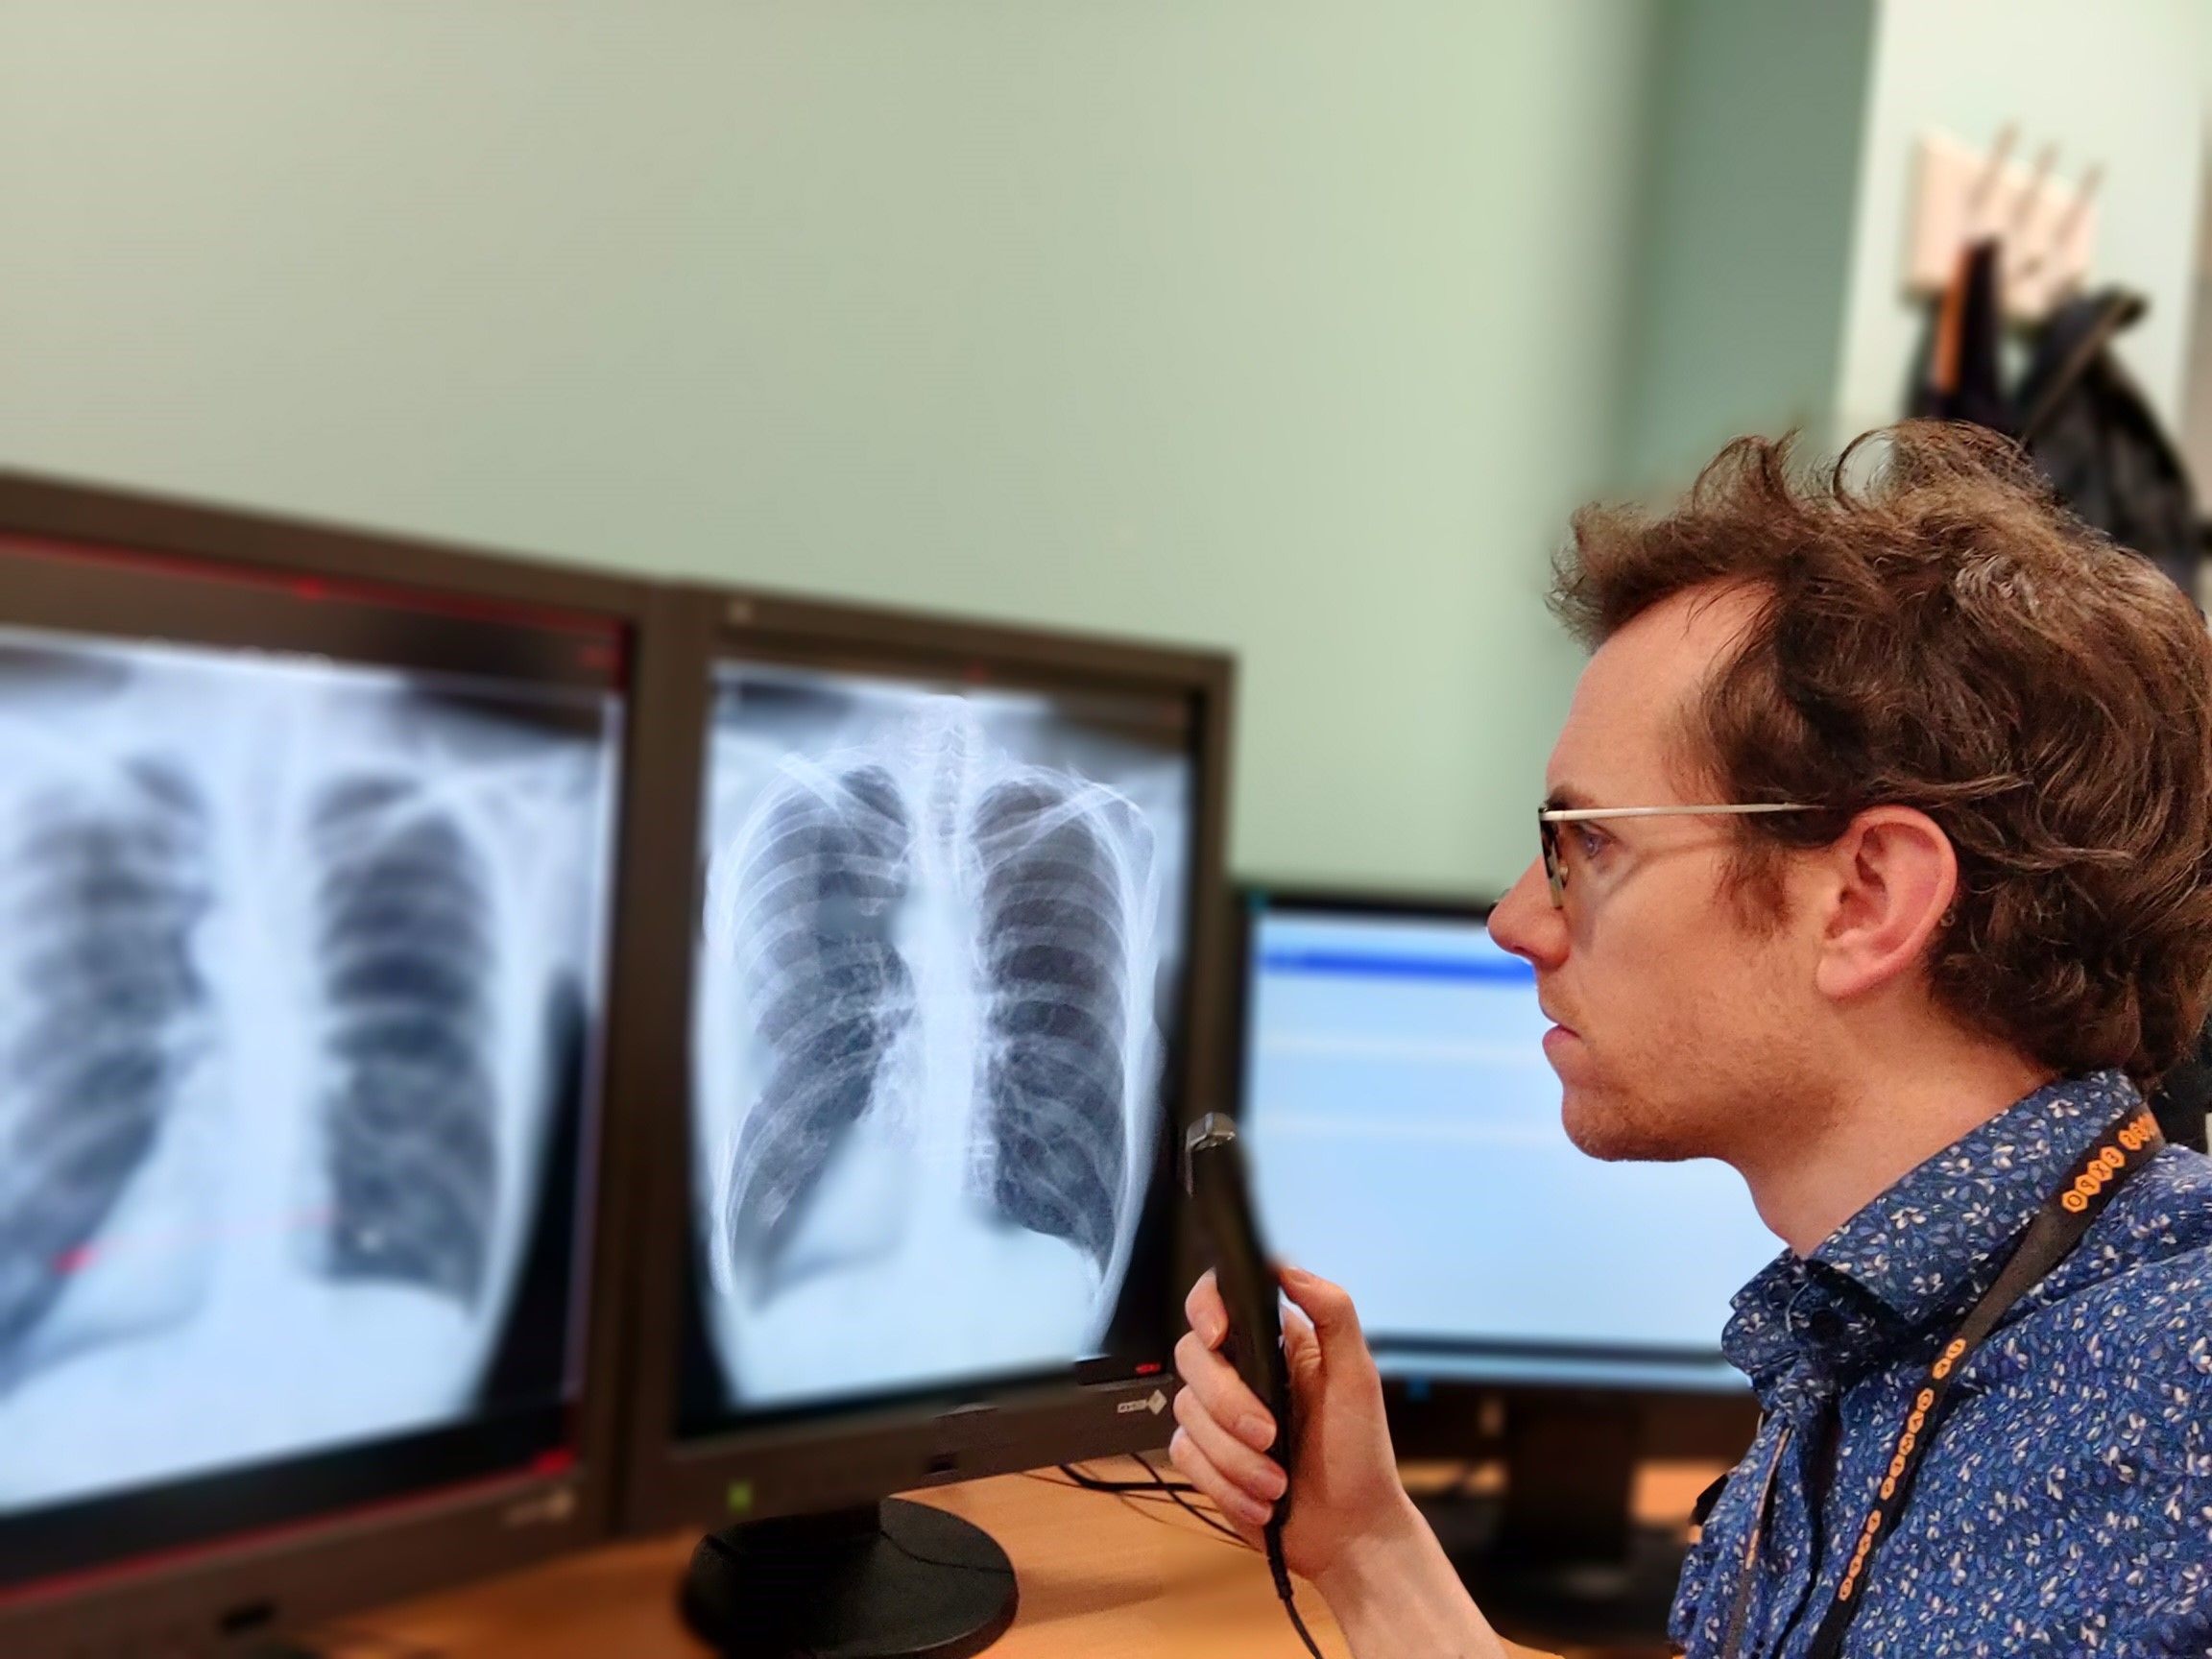 AI could speed up COVID-19 diagnosis in Emergency Departments